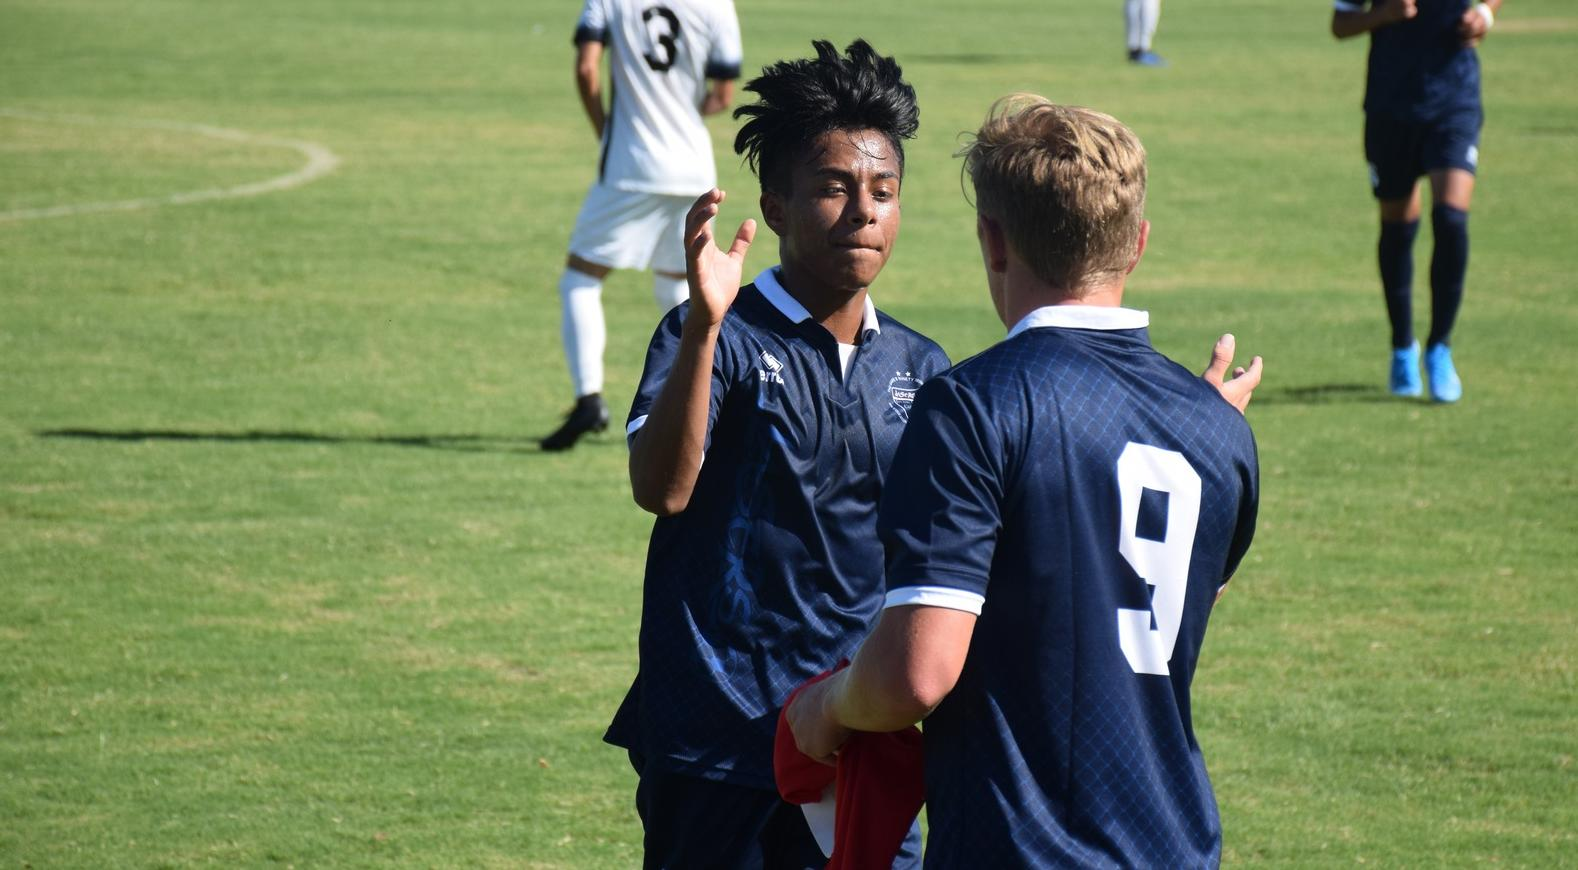 Men's soccer team tops Mesa for second straight victory